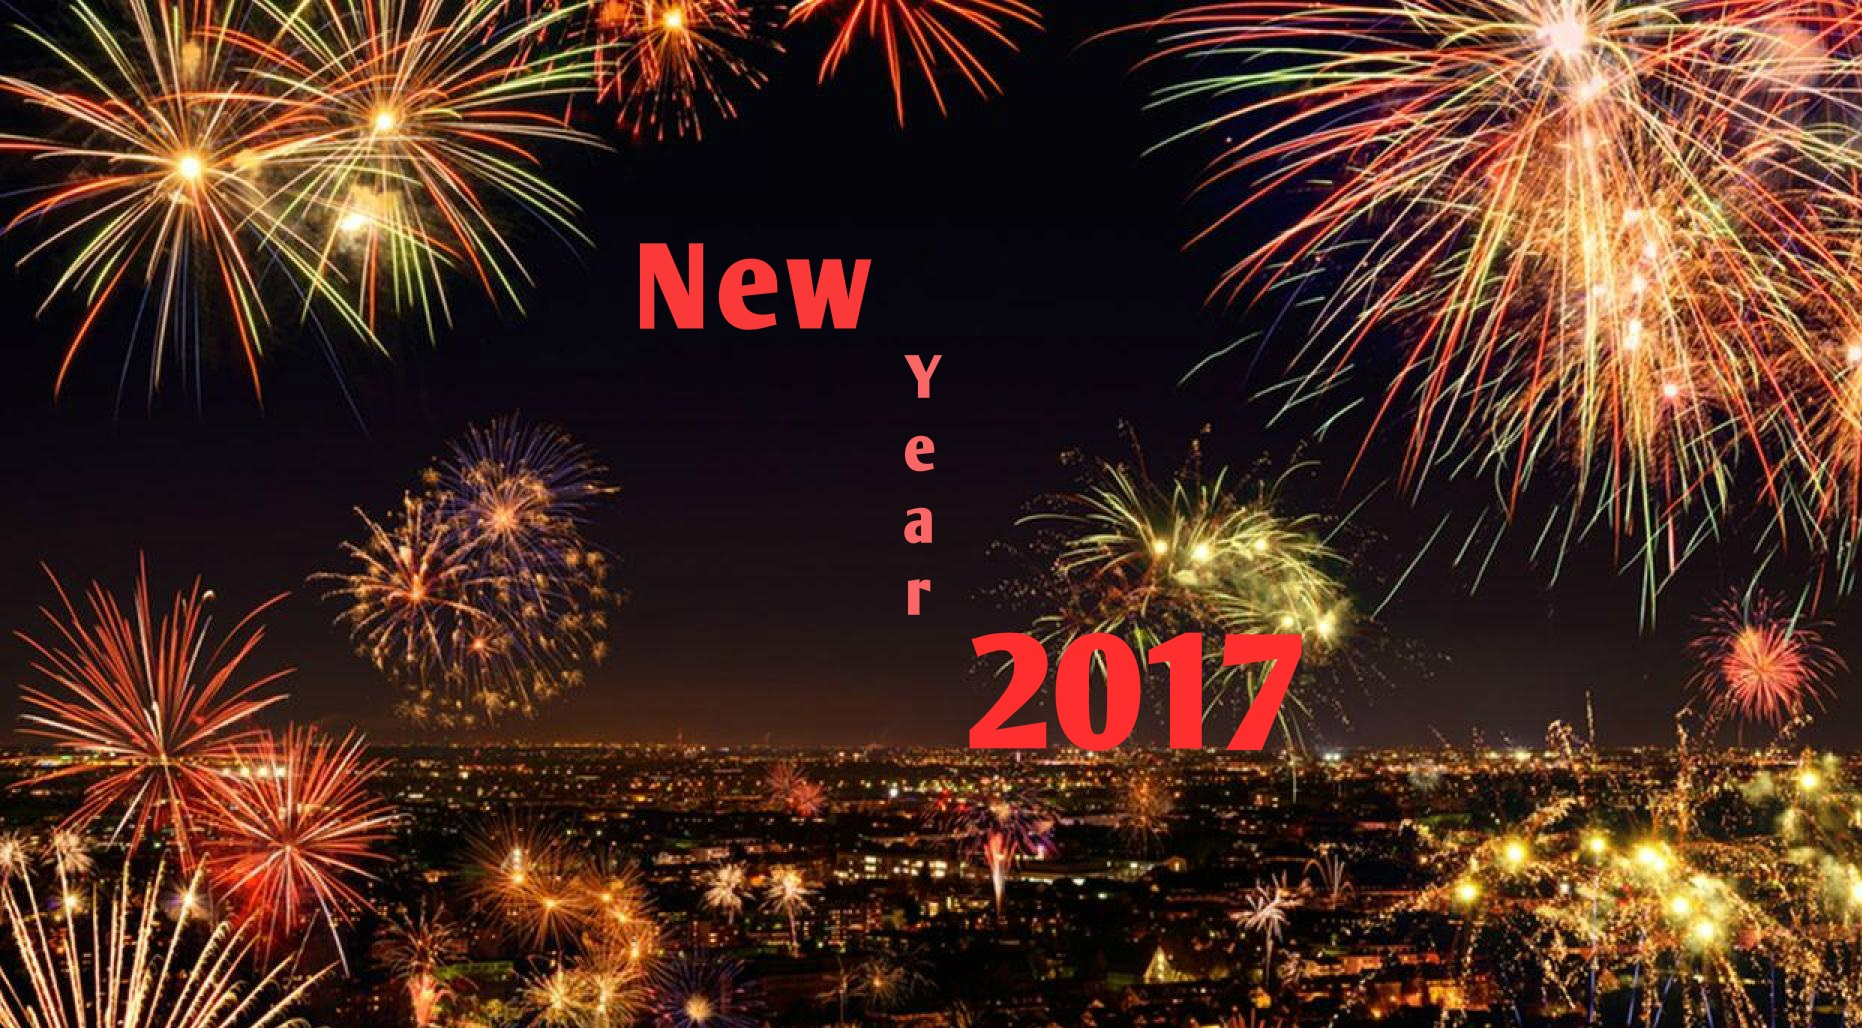 New Year 2017 Hd Wallpaper: Happy New Year 2019 HD Wallpapers, Images, Pictures